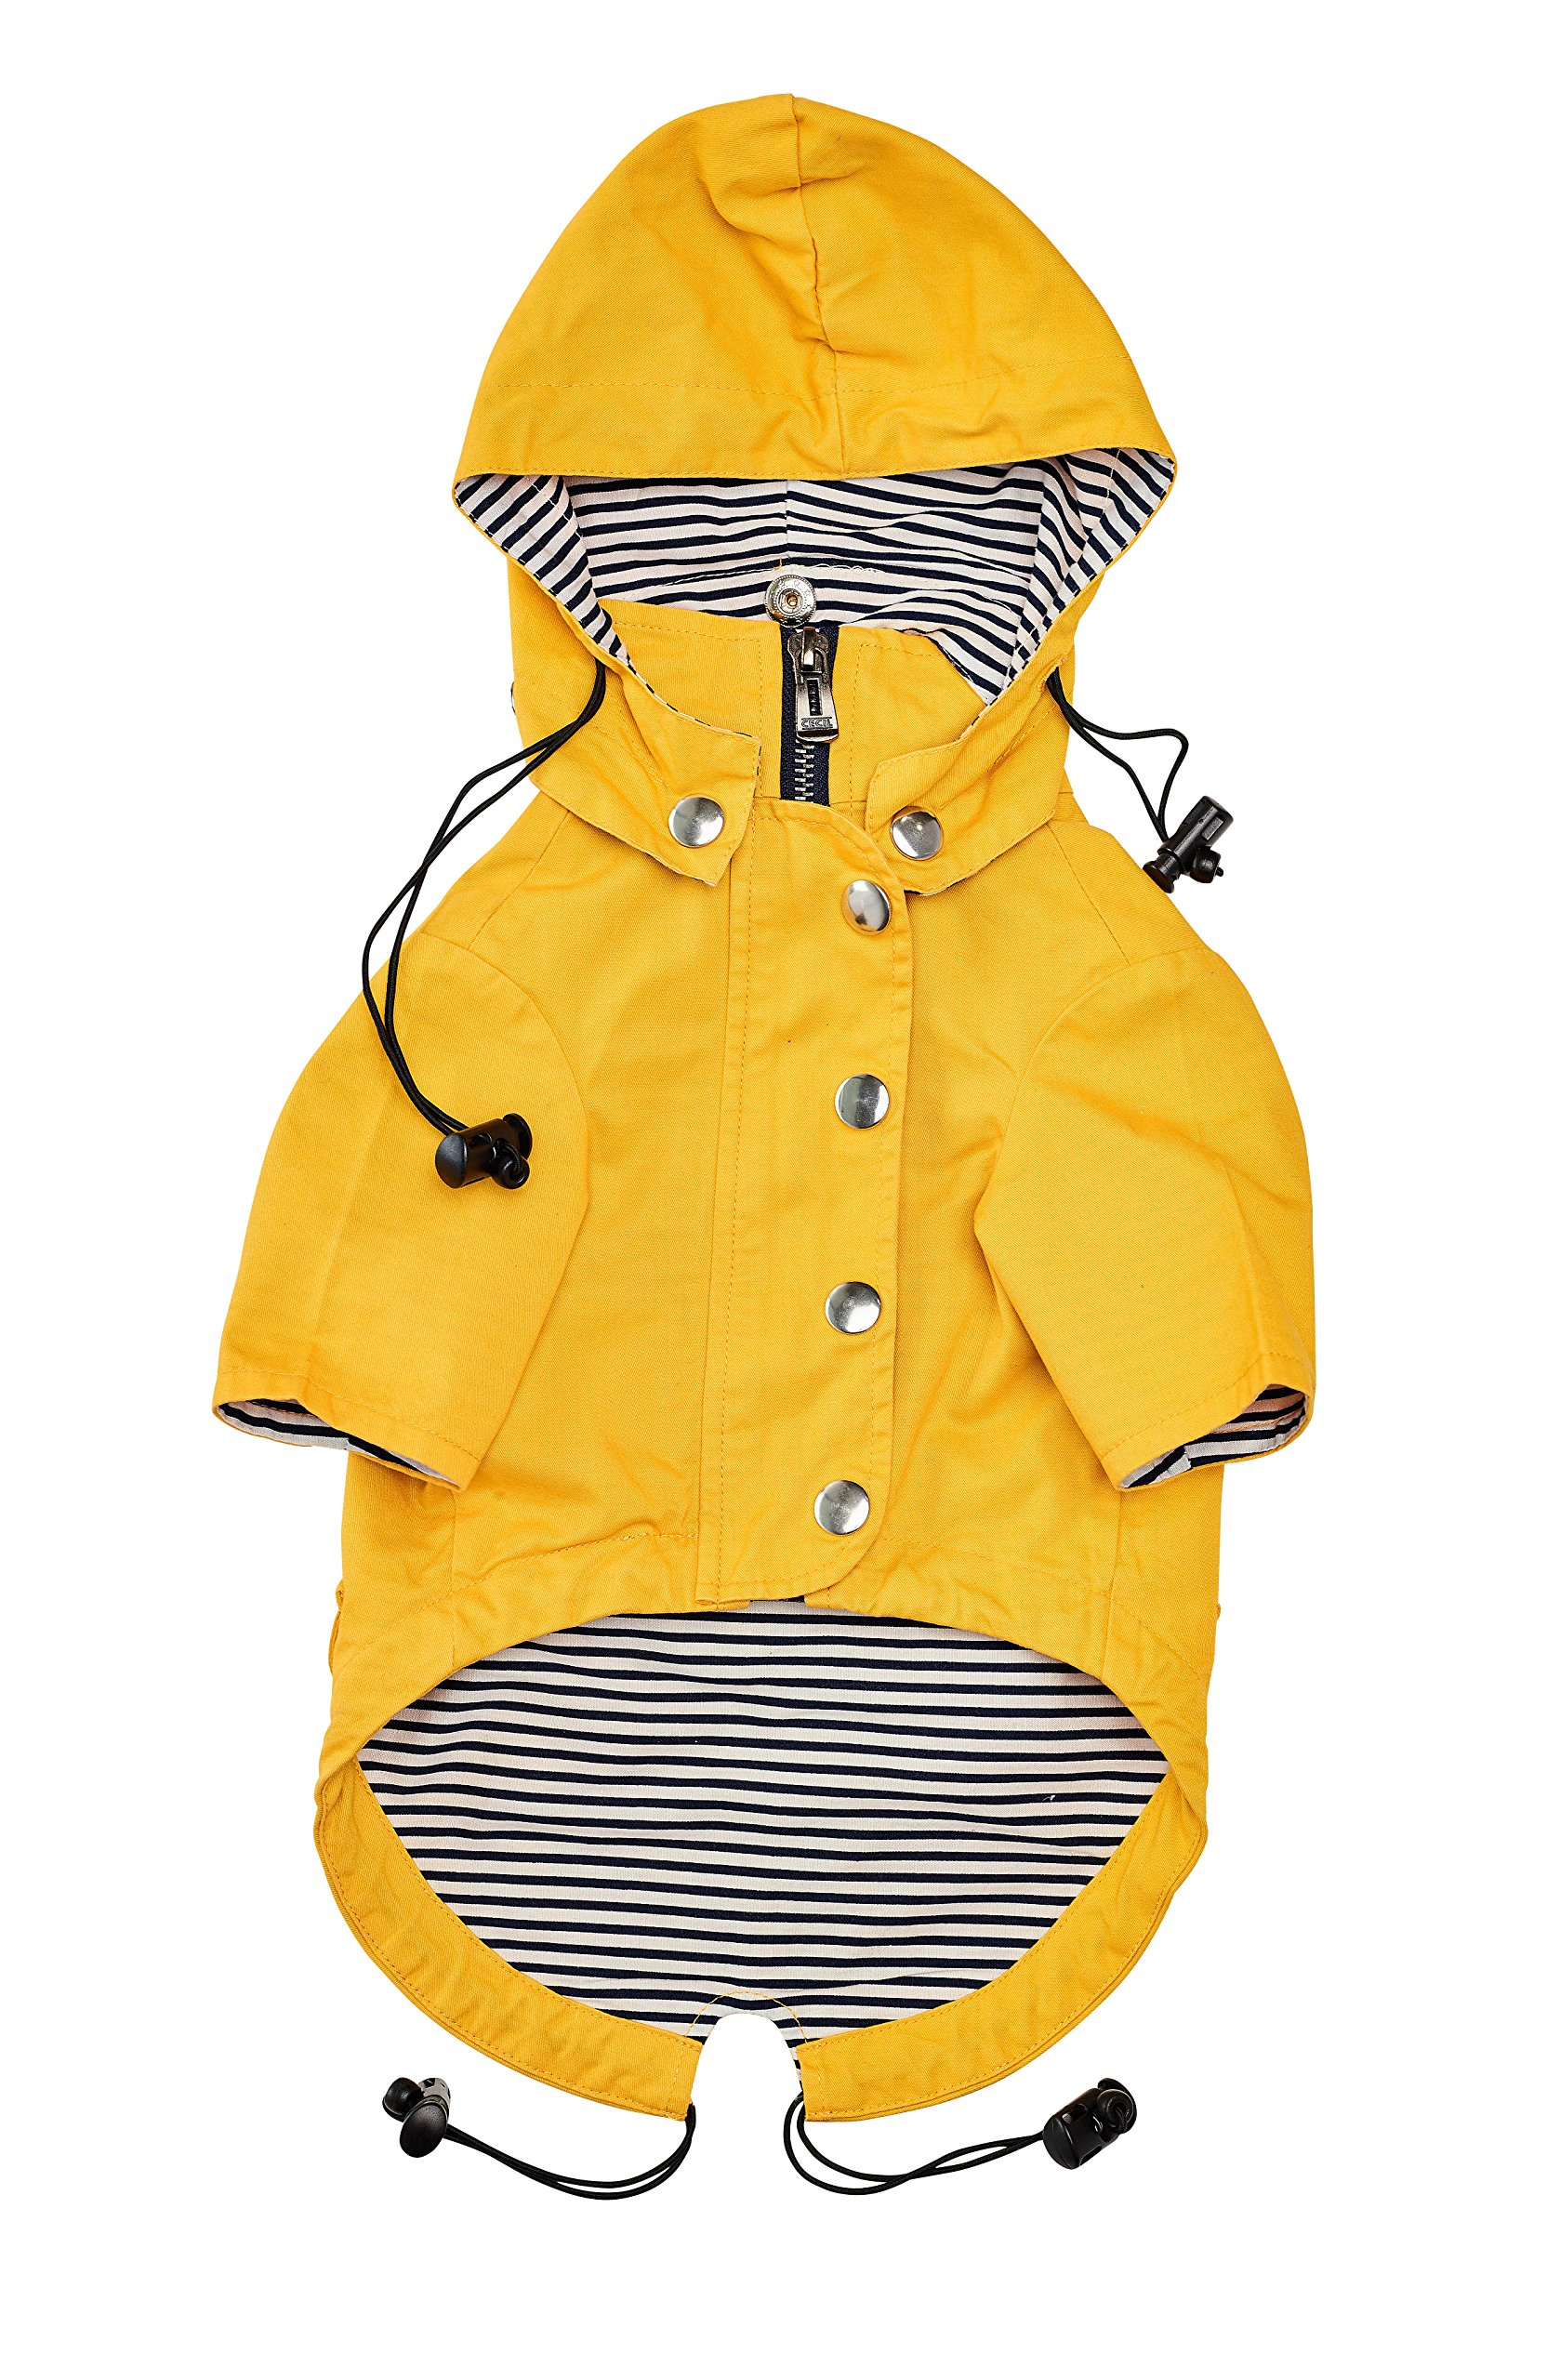 Ellie Dog Wear Yellow Zip Up Dog Raincoat with Reflective Buttons, Pockets, Rain/Water Resistant, Adjustable Drawstring, Removable Hoodie - Extra Small to Extra Large - Stylish Dog Raincoats (M)